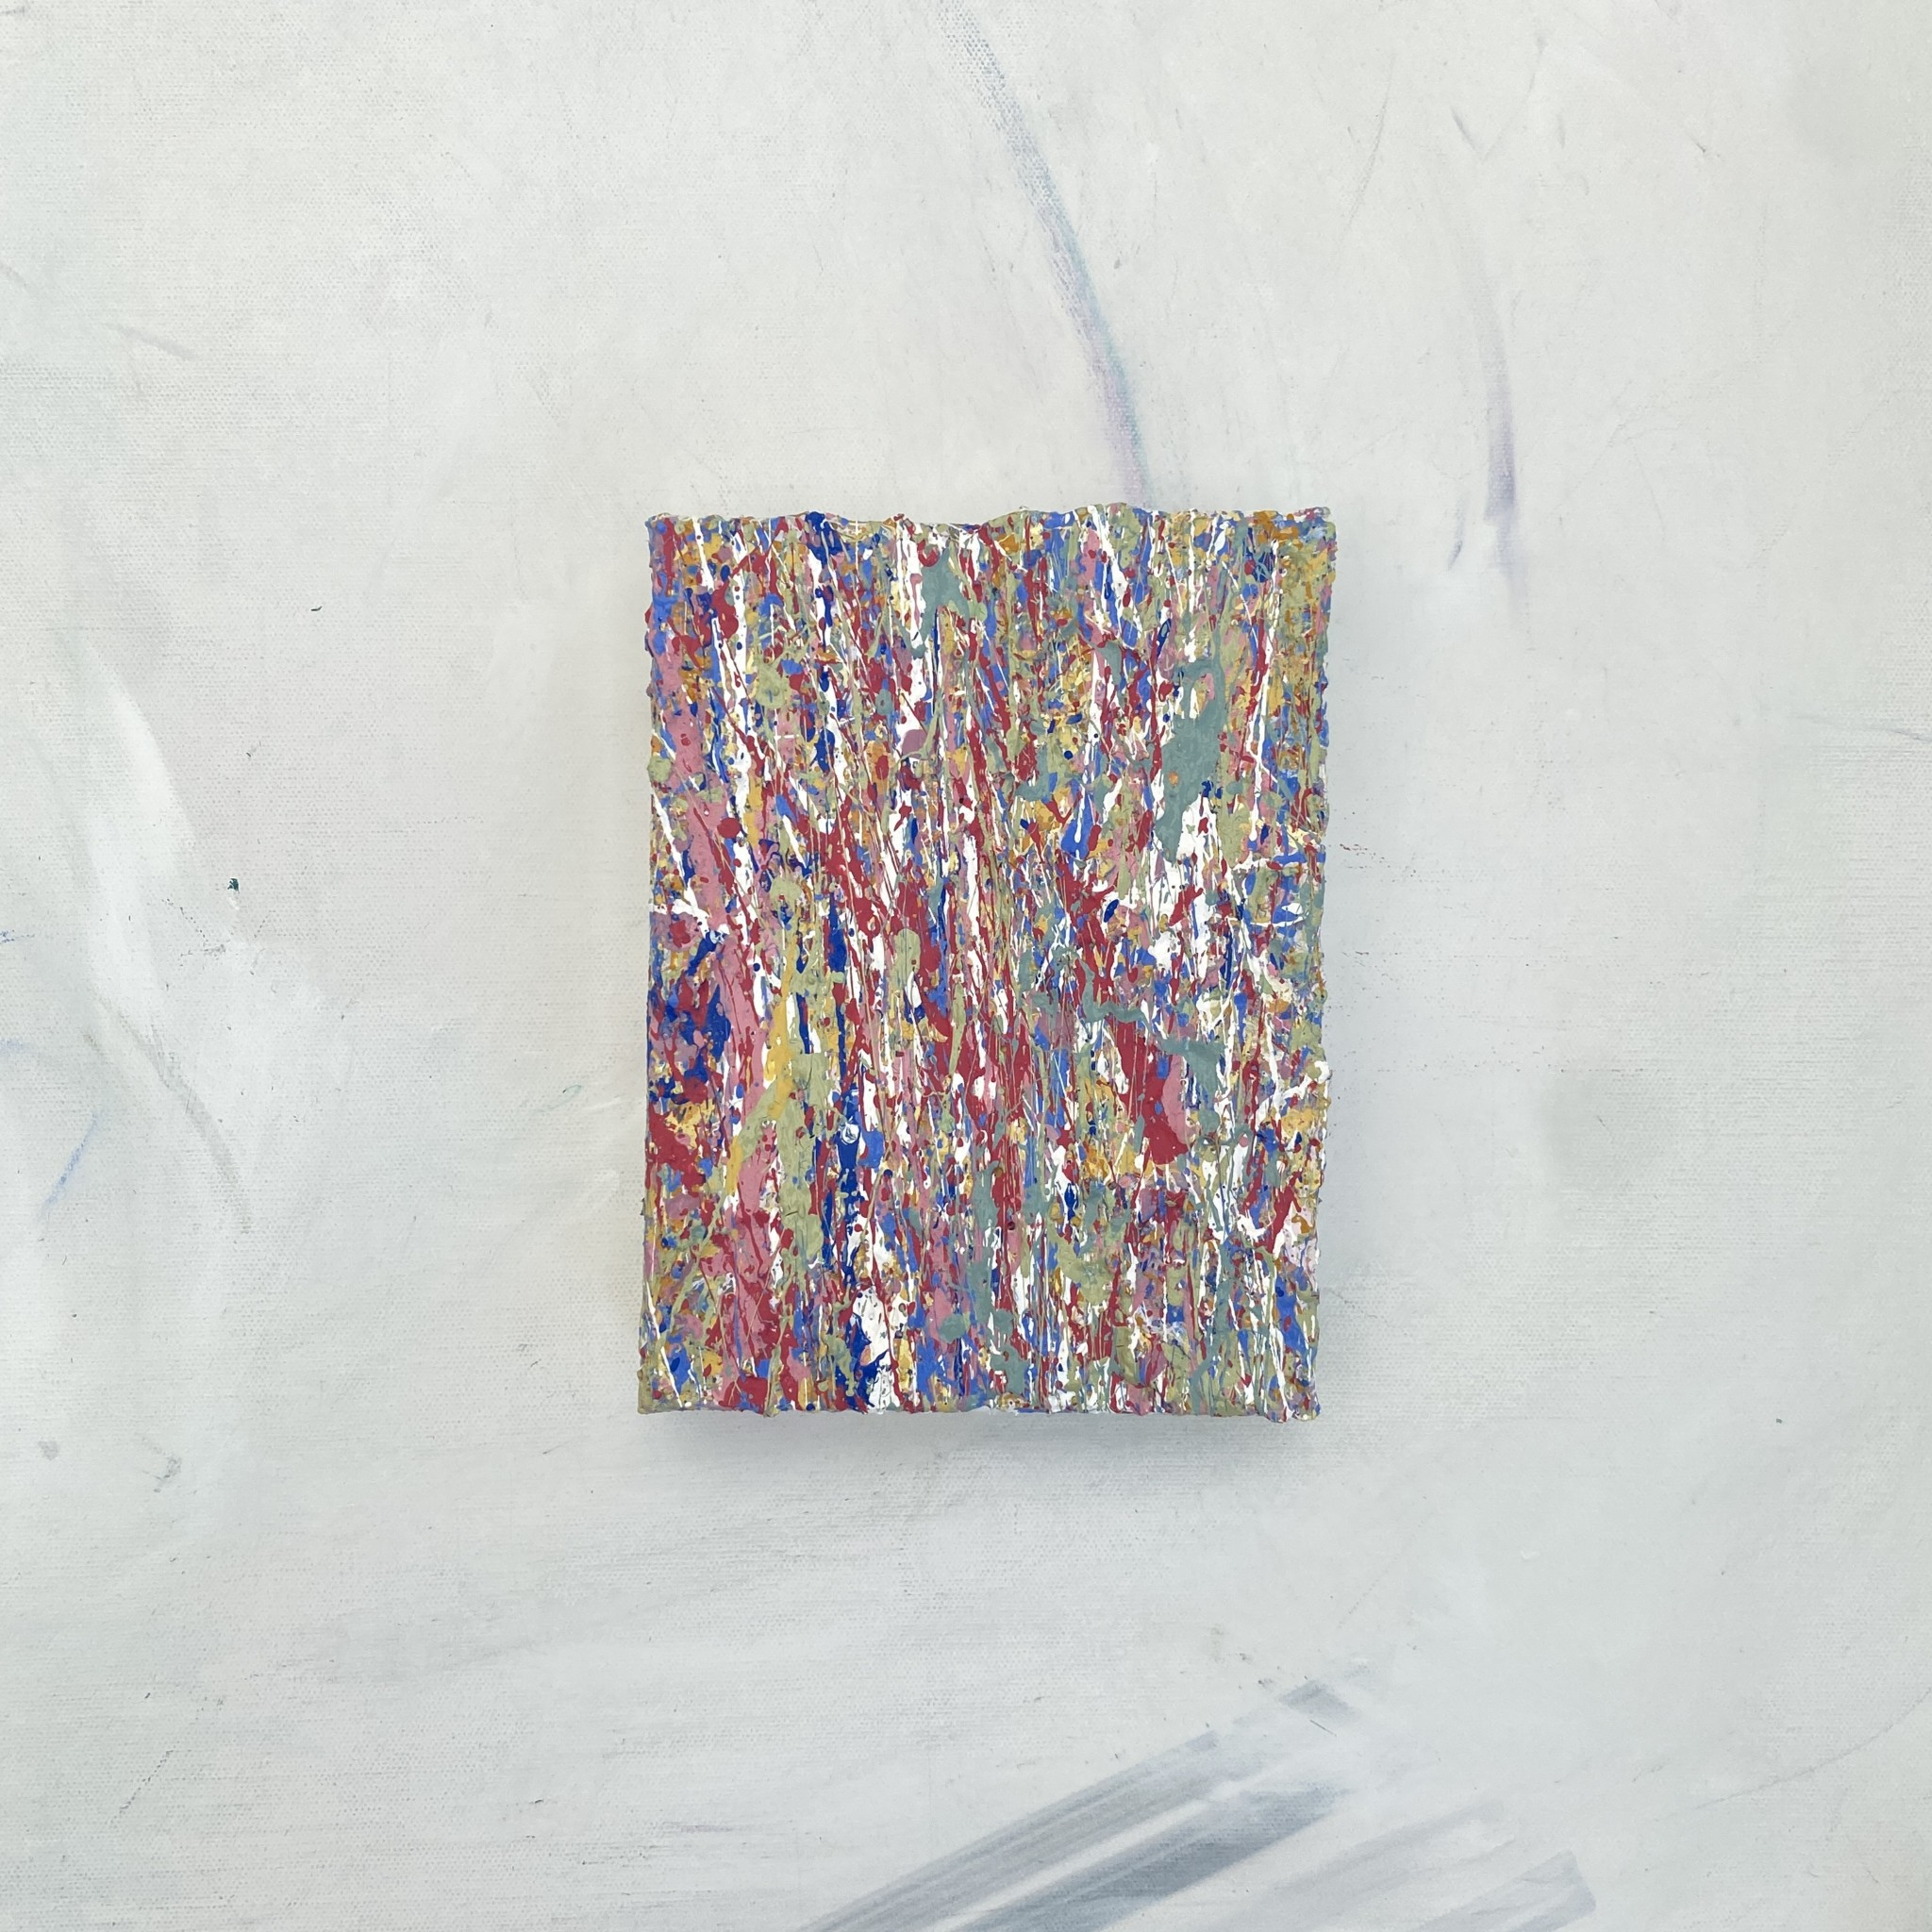 gallery full view of Elements One a colourful abstract artwork created using plastic free environmentally friendly paints by yeovil somerset artist emily duchscherer kirk